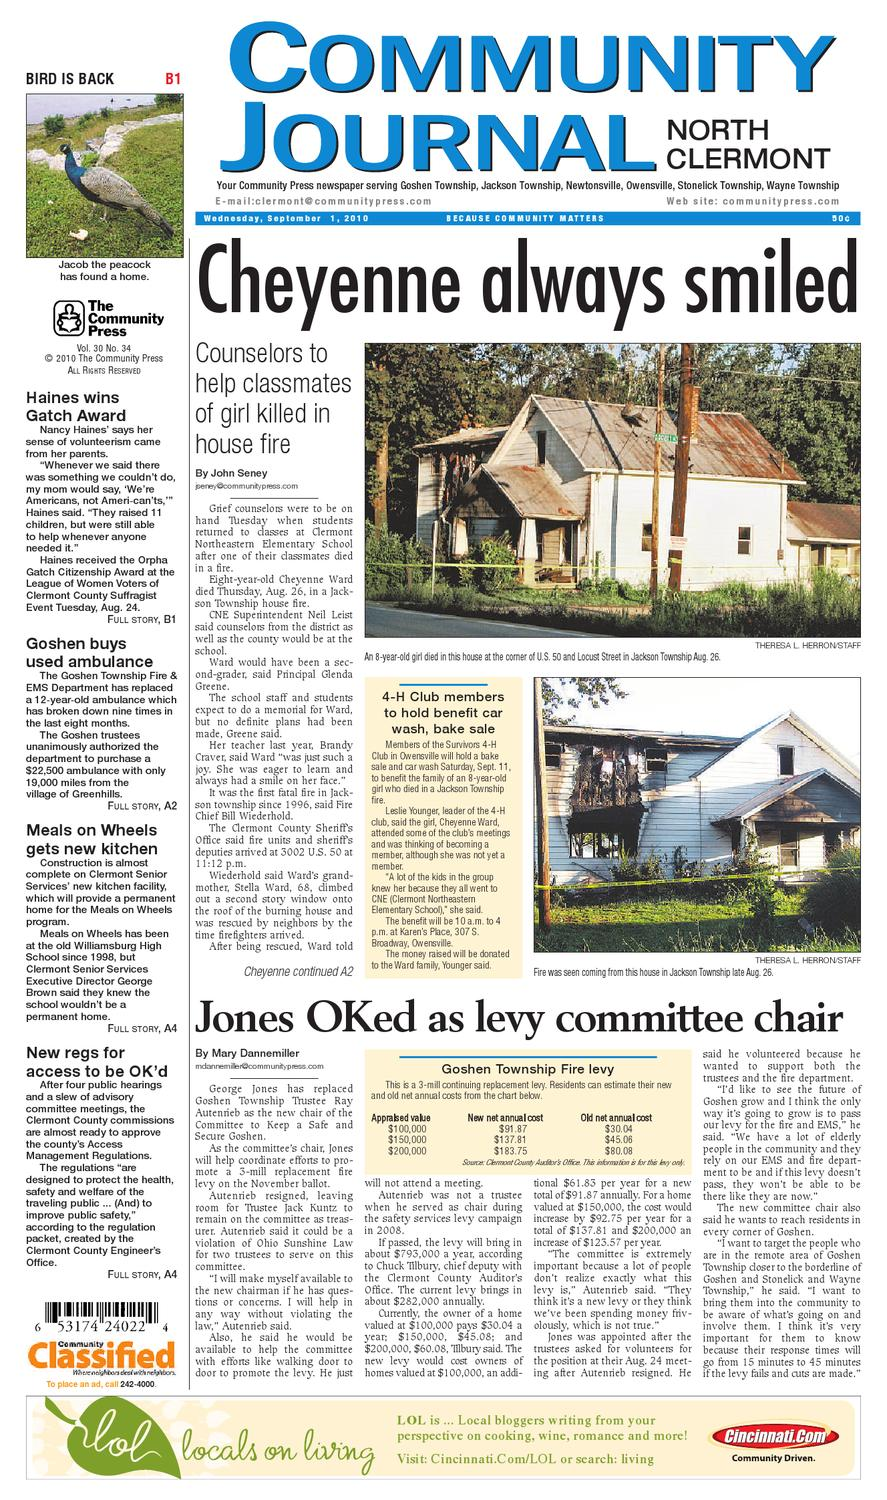 community-journal-north-clermont-090110 by Enquirer Media ...